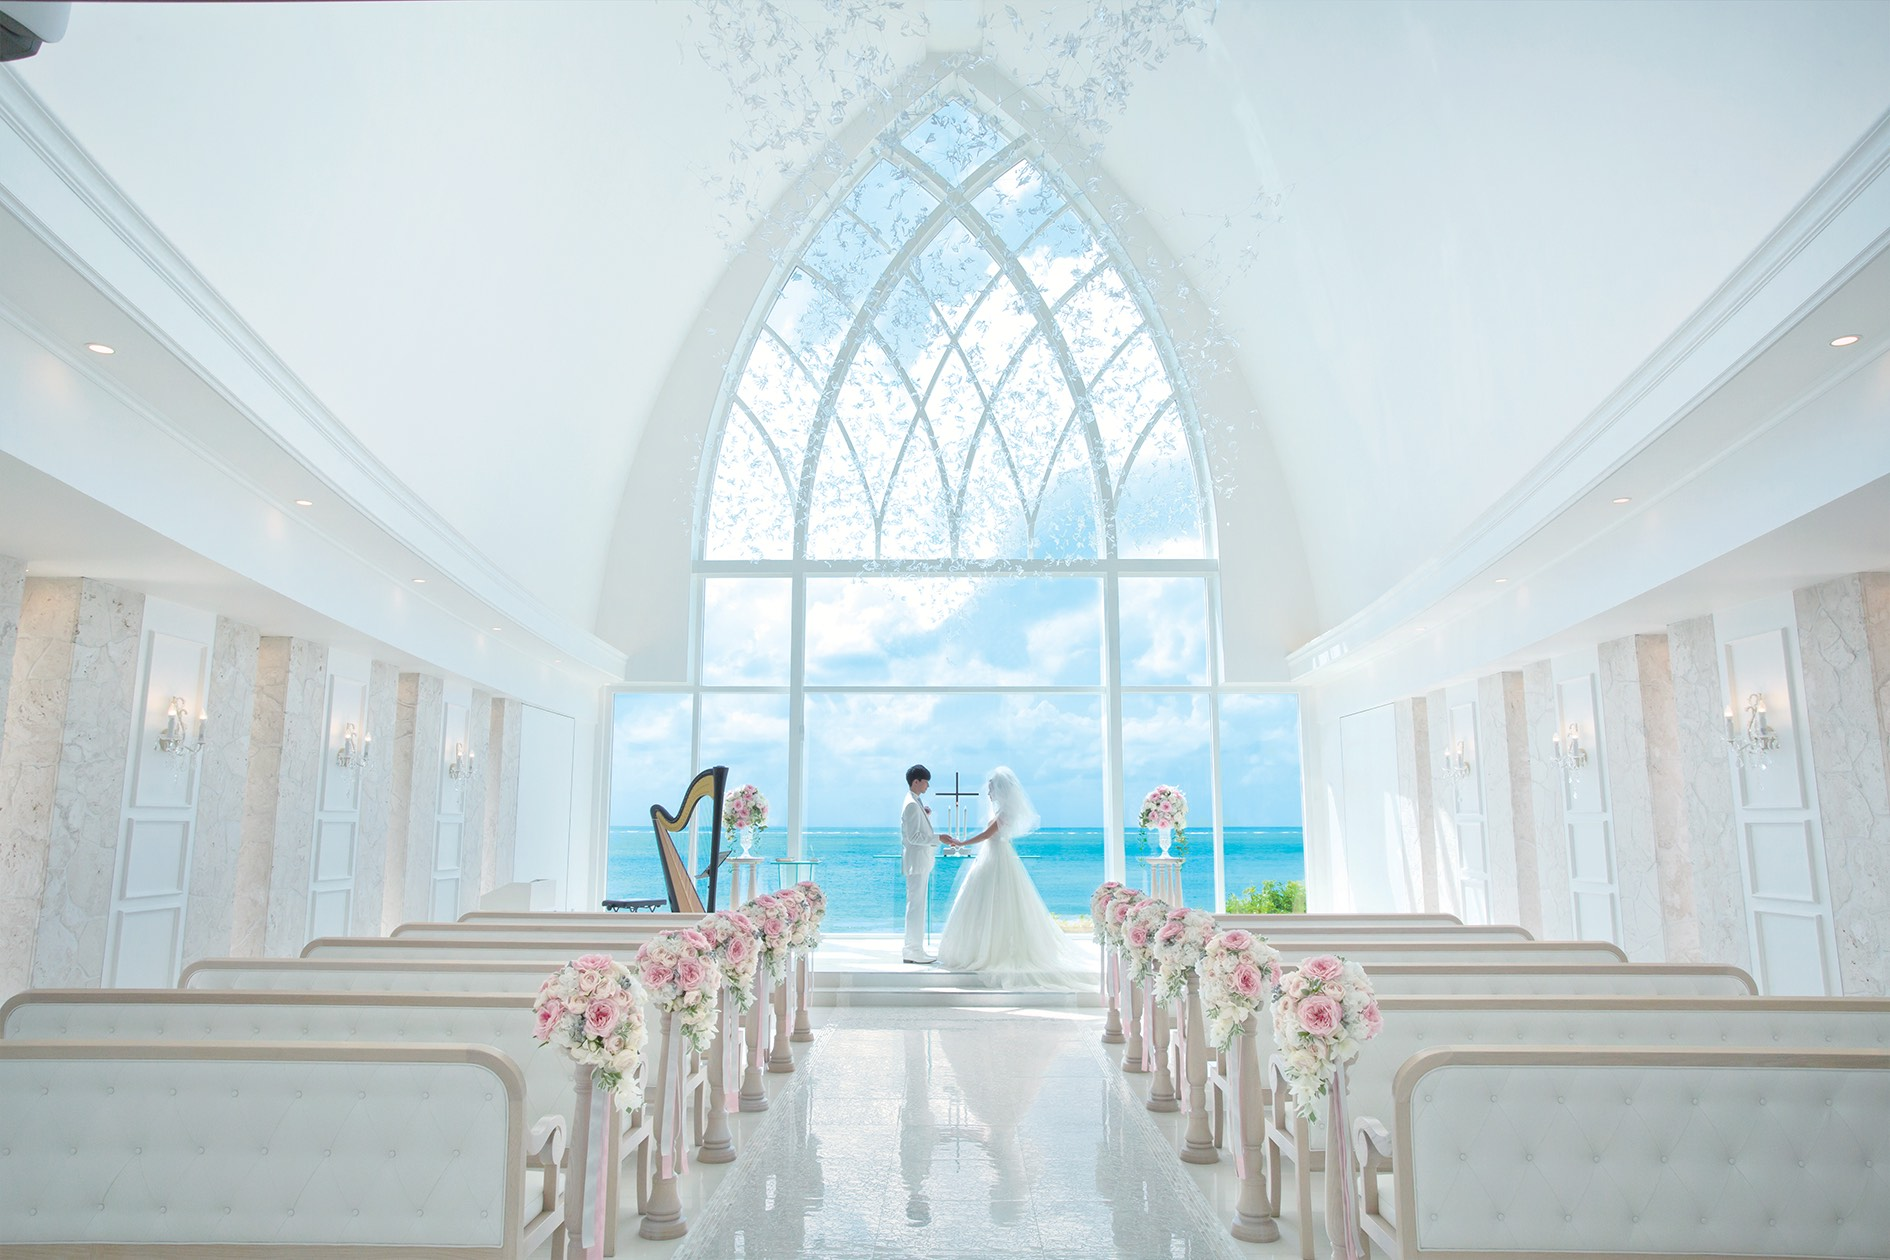 Wedding Venues Are One Of The Most Important Aspects A You Should Be Sure Little Details Such As Parking Payment Terms And Availability